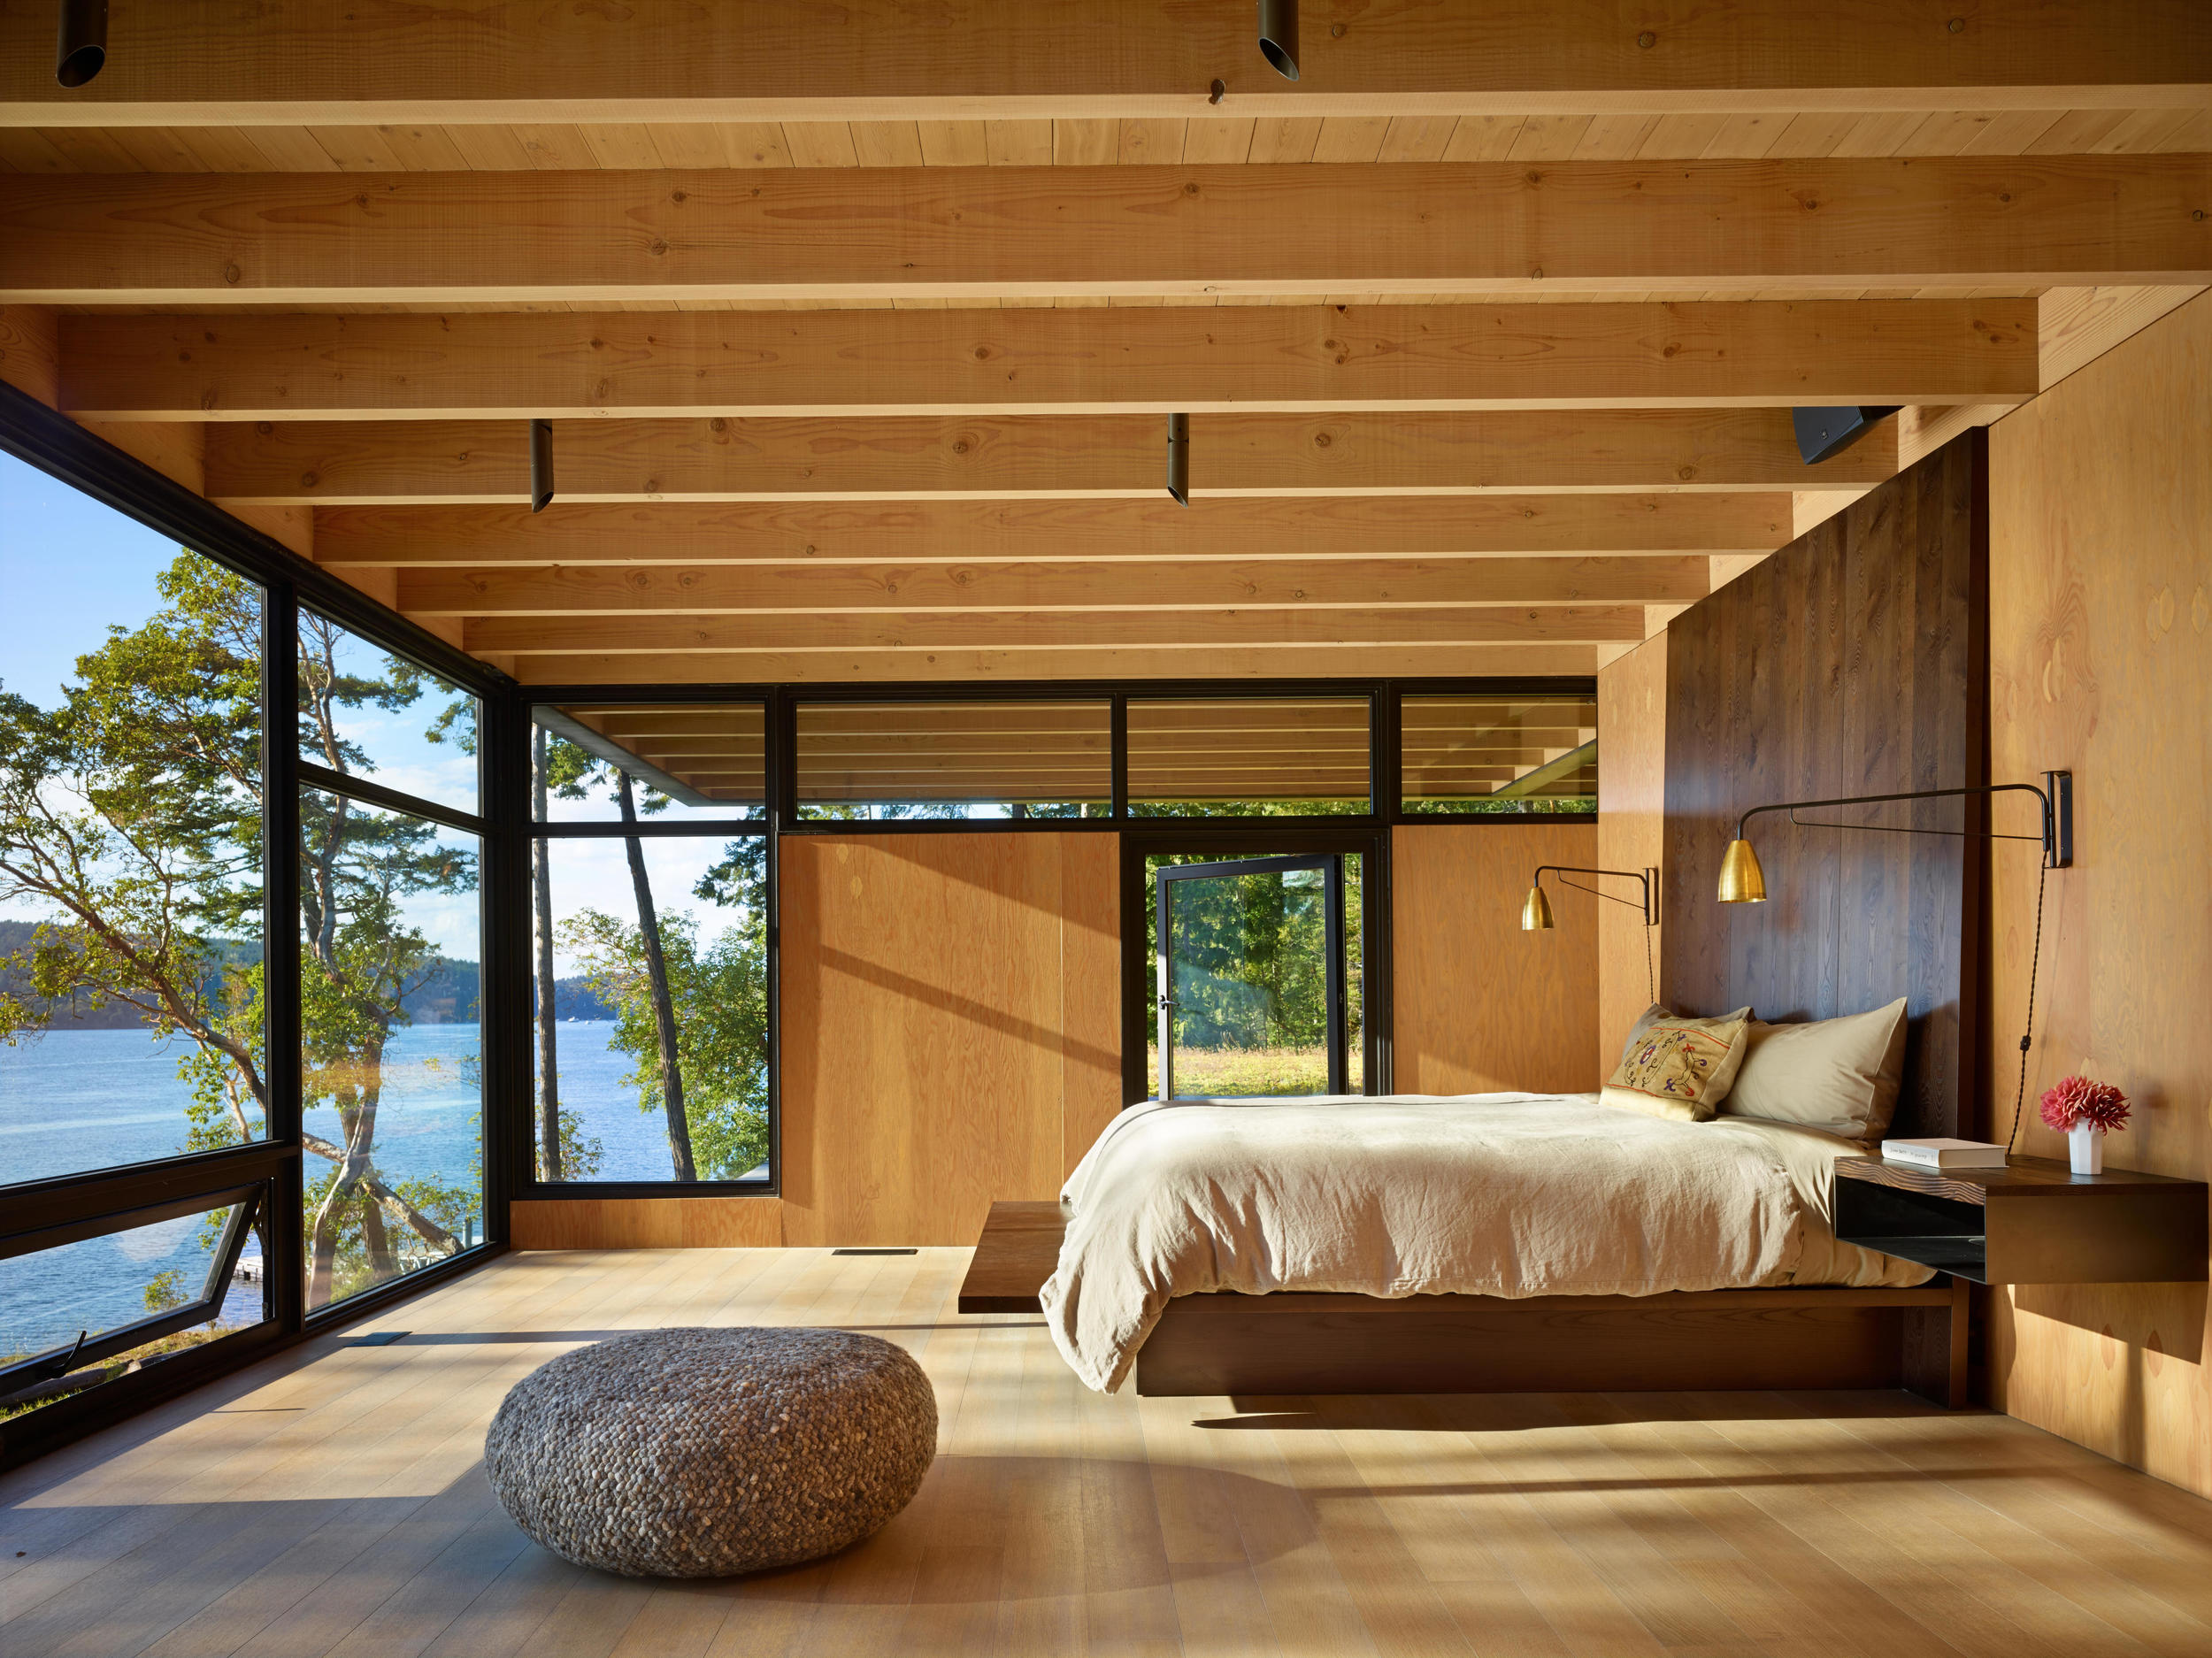 The master bedroom of Pole Pass lodge,in the San Juan Islands,Washington State, designed by Seattle-based Olson Kundig Architects